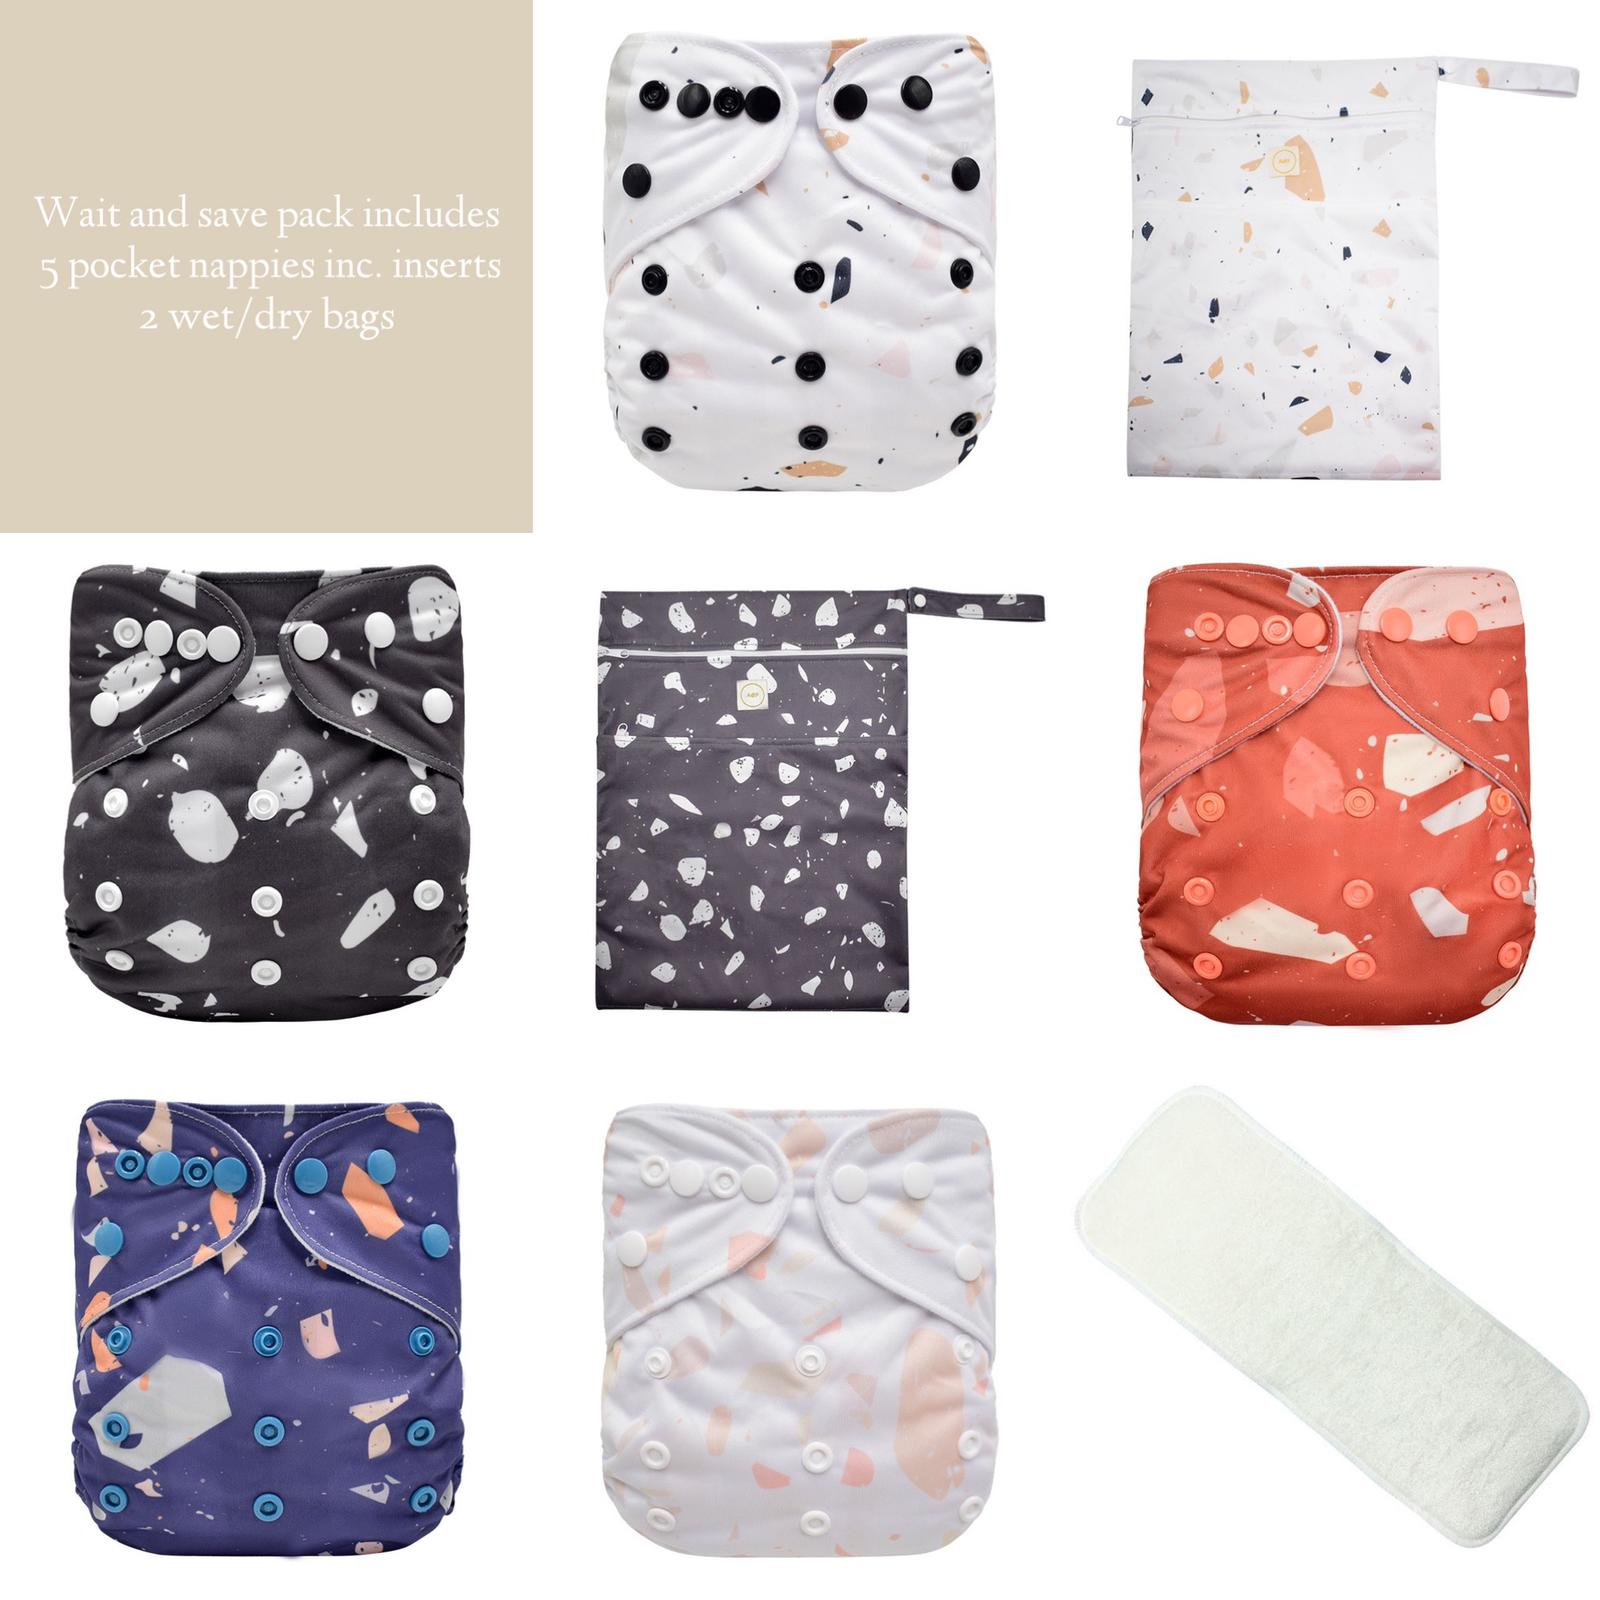 [Mumsbest] Baby Cloth Diaper Washable Pocket Waterproof Cartoon Owl Baby Diapers Reusable Cloth Nappy fashion cartoon print diaper pocket washable diapers couches lavables baby nappy reusable nappy baby cloth diapers